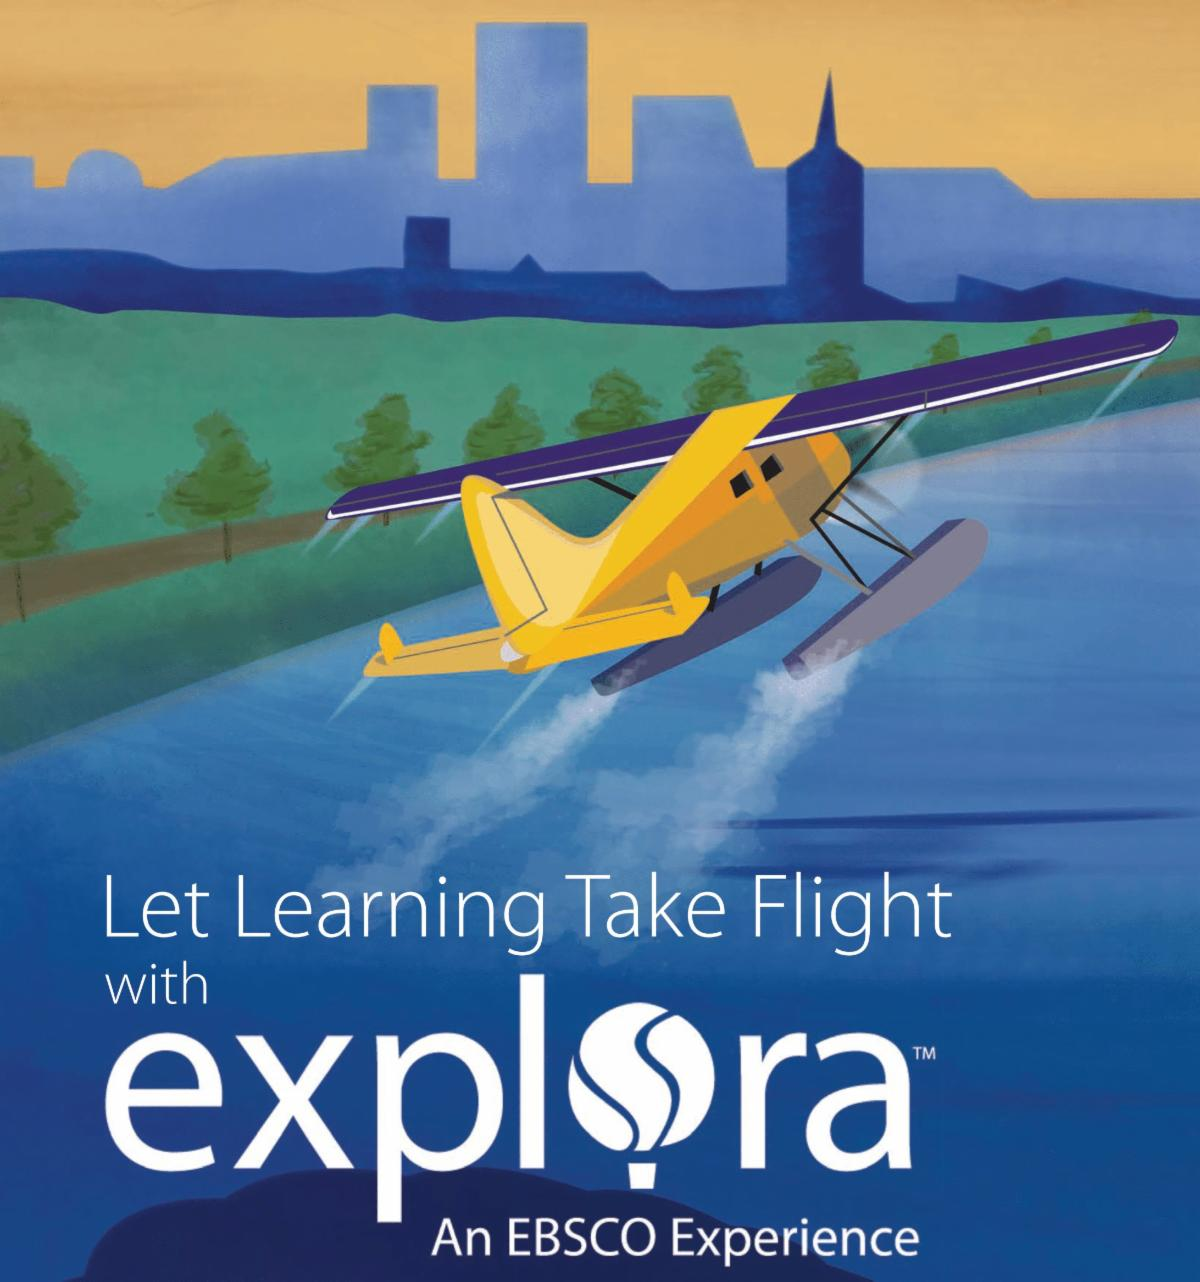 Explora picture with a plane.